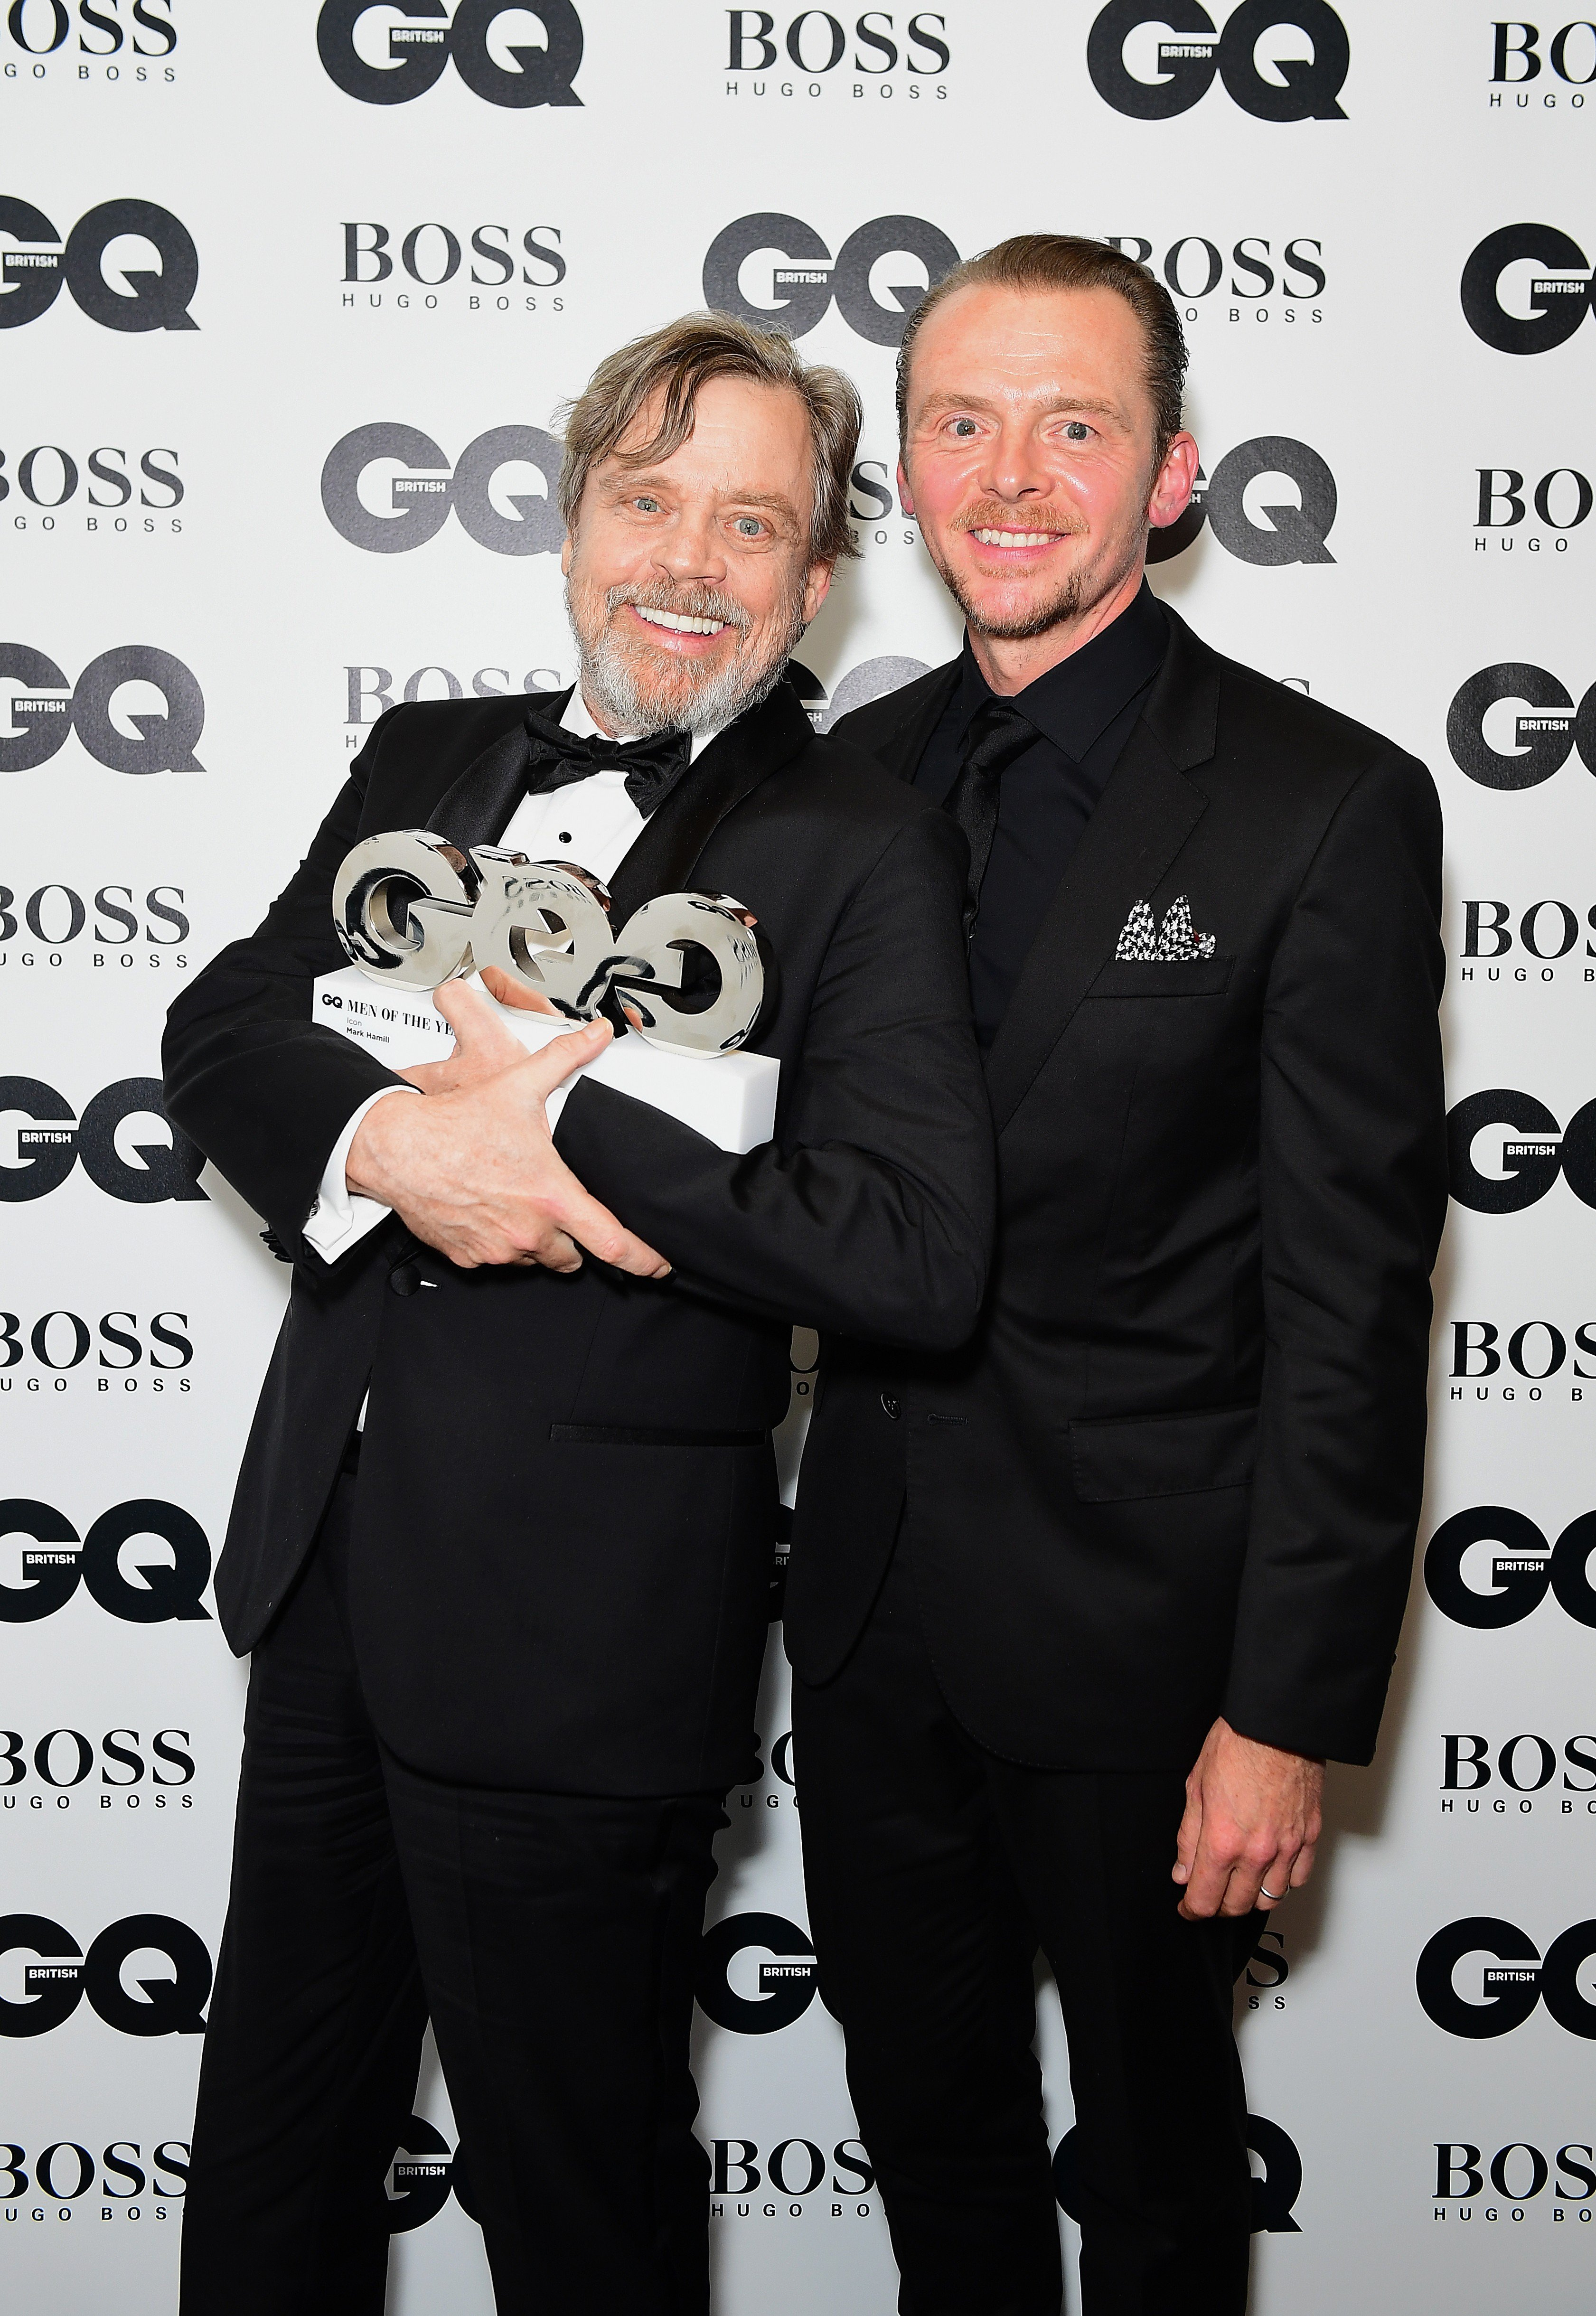 Mark Hammill (left) with his Icon award poses with Simon Pegg during the GQ Men of the Year Awards 2017 held at the Tate Modern, London., Image: 348438417, License: Rights-managed, Restrictions: , Model Release: no, Credit line: Profimedia, Press Association